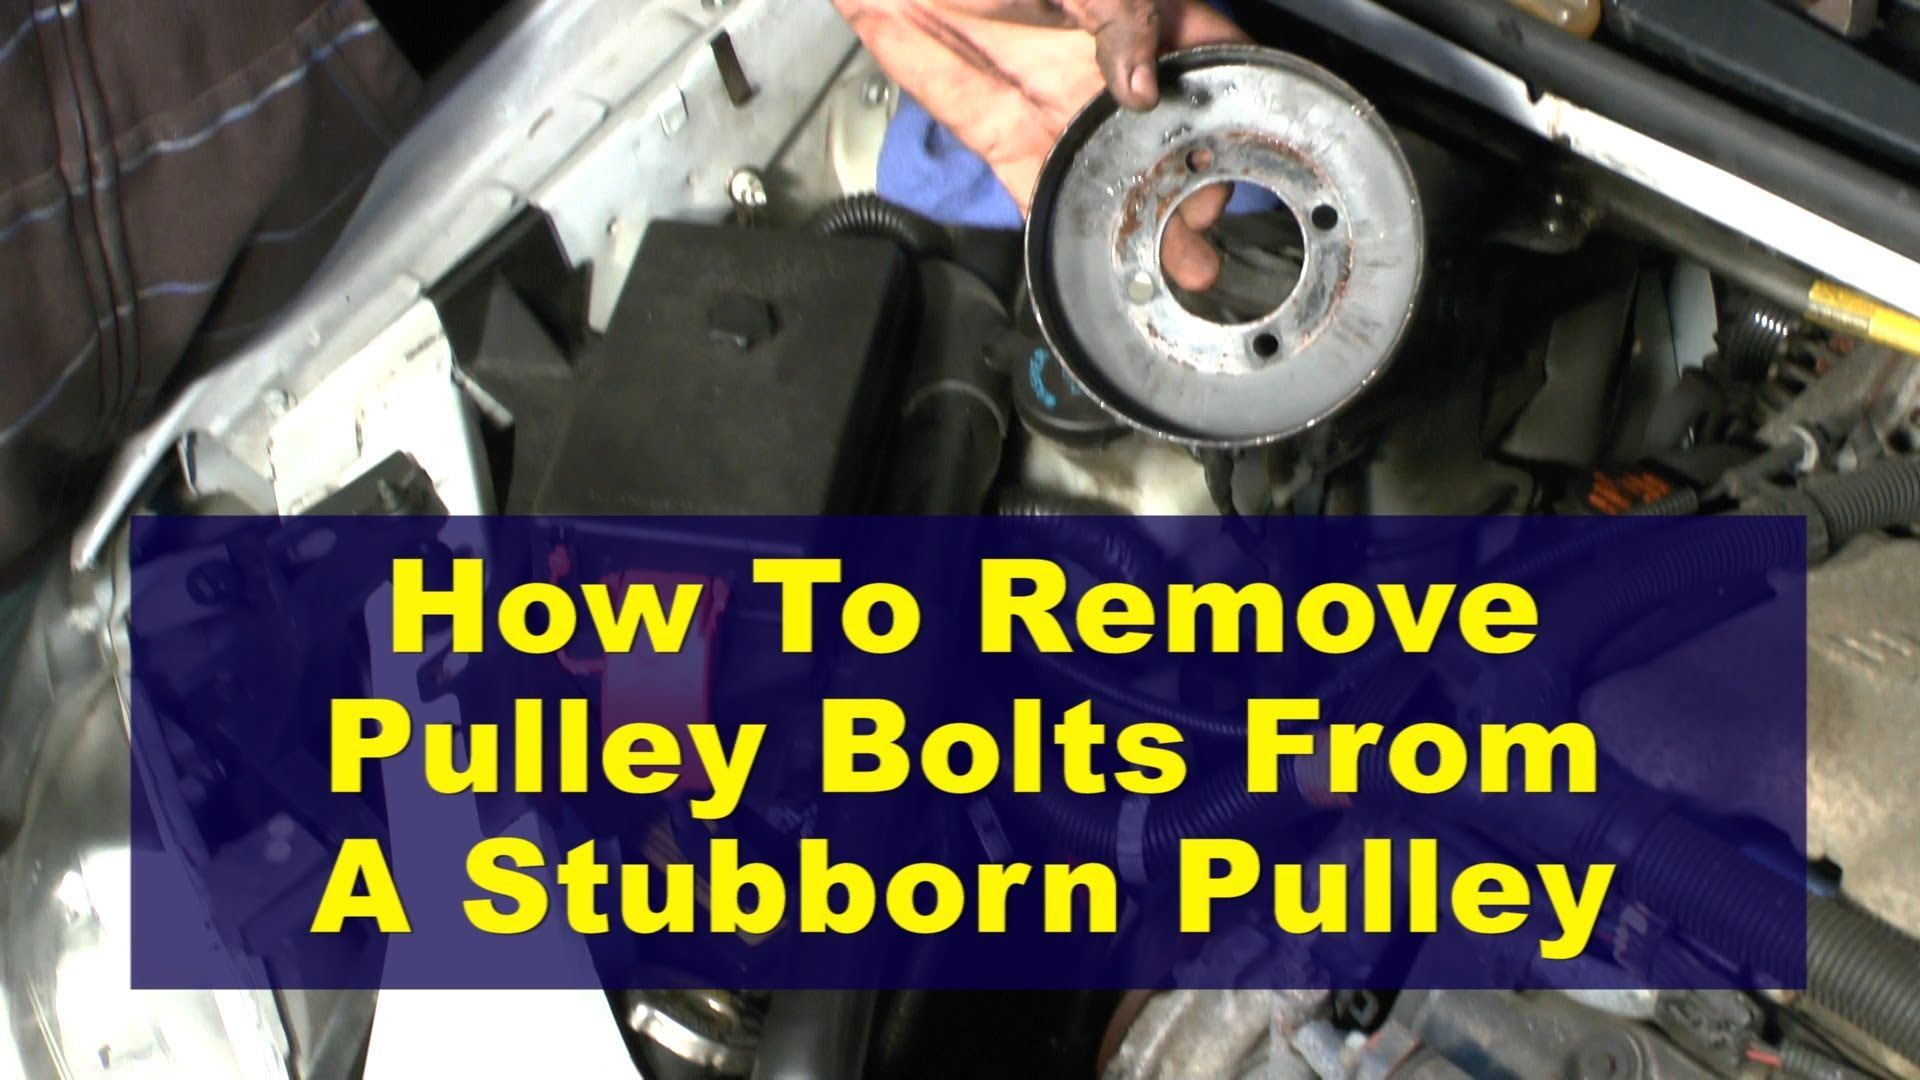 Easy Mechanic Trick Loosen Tight Pulley Bolts Stubborn Pulley